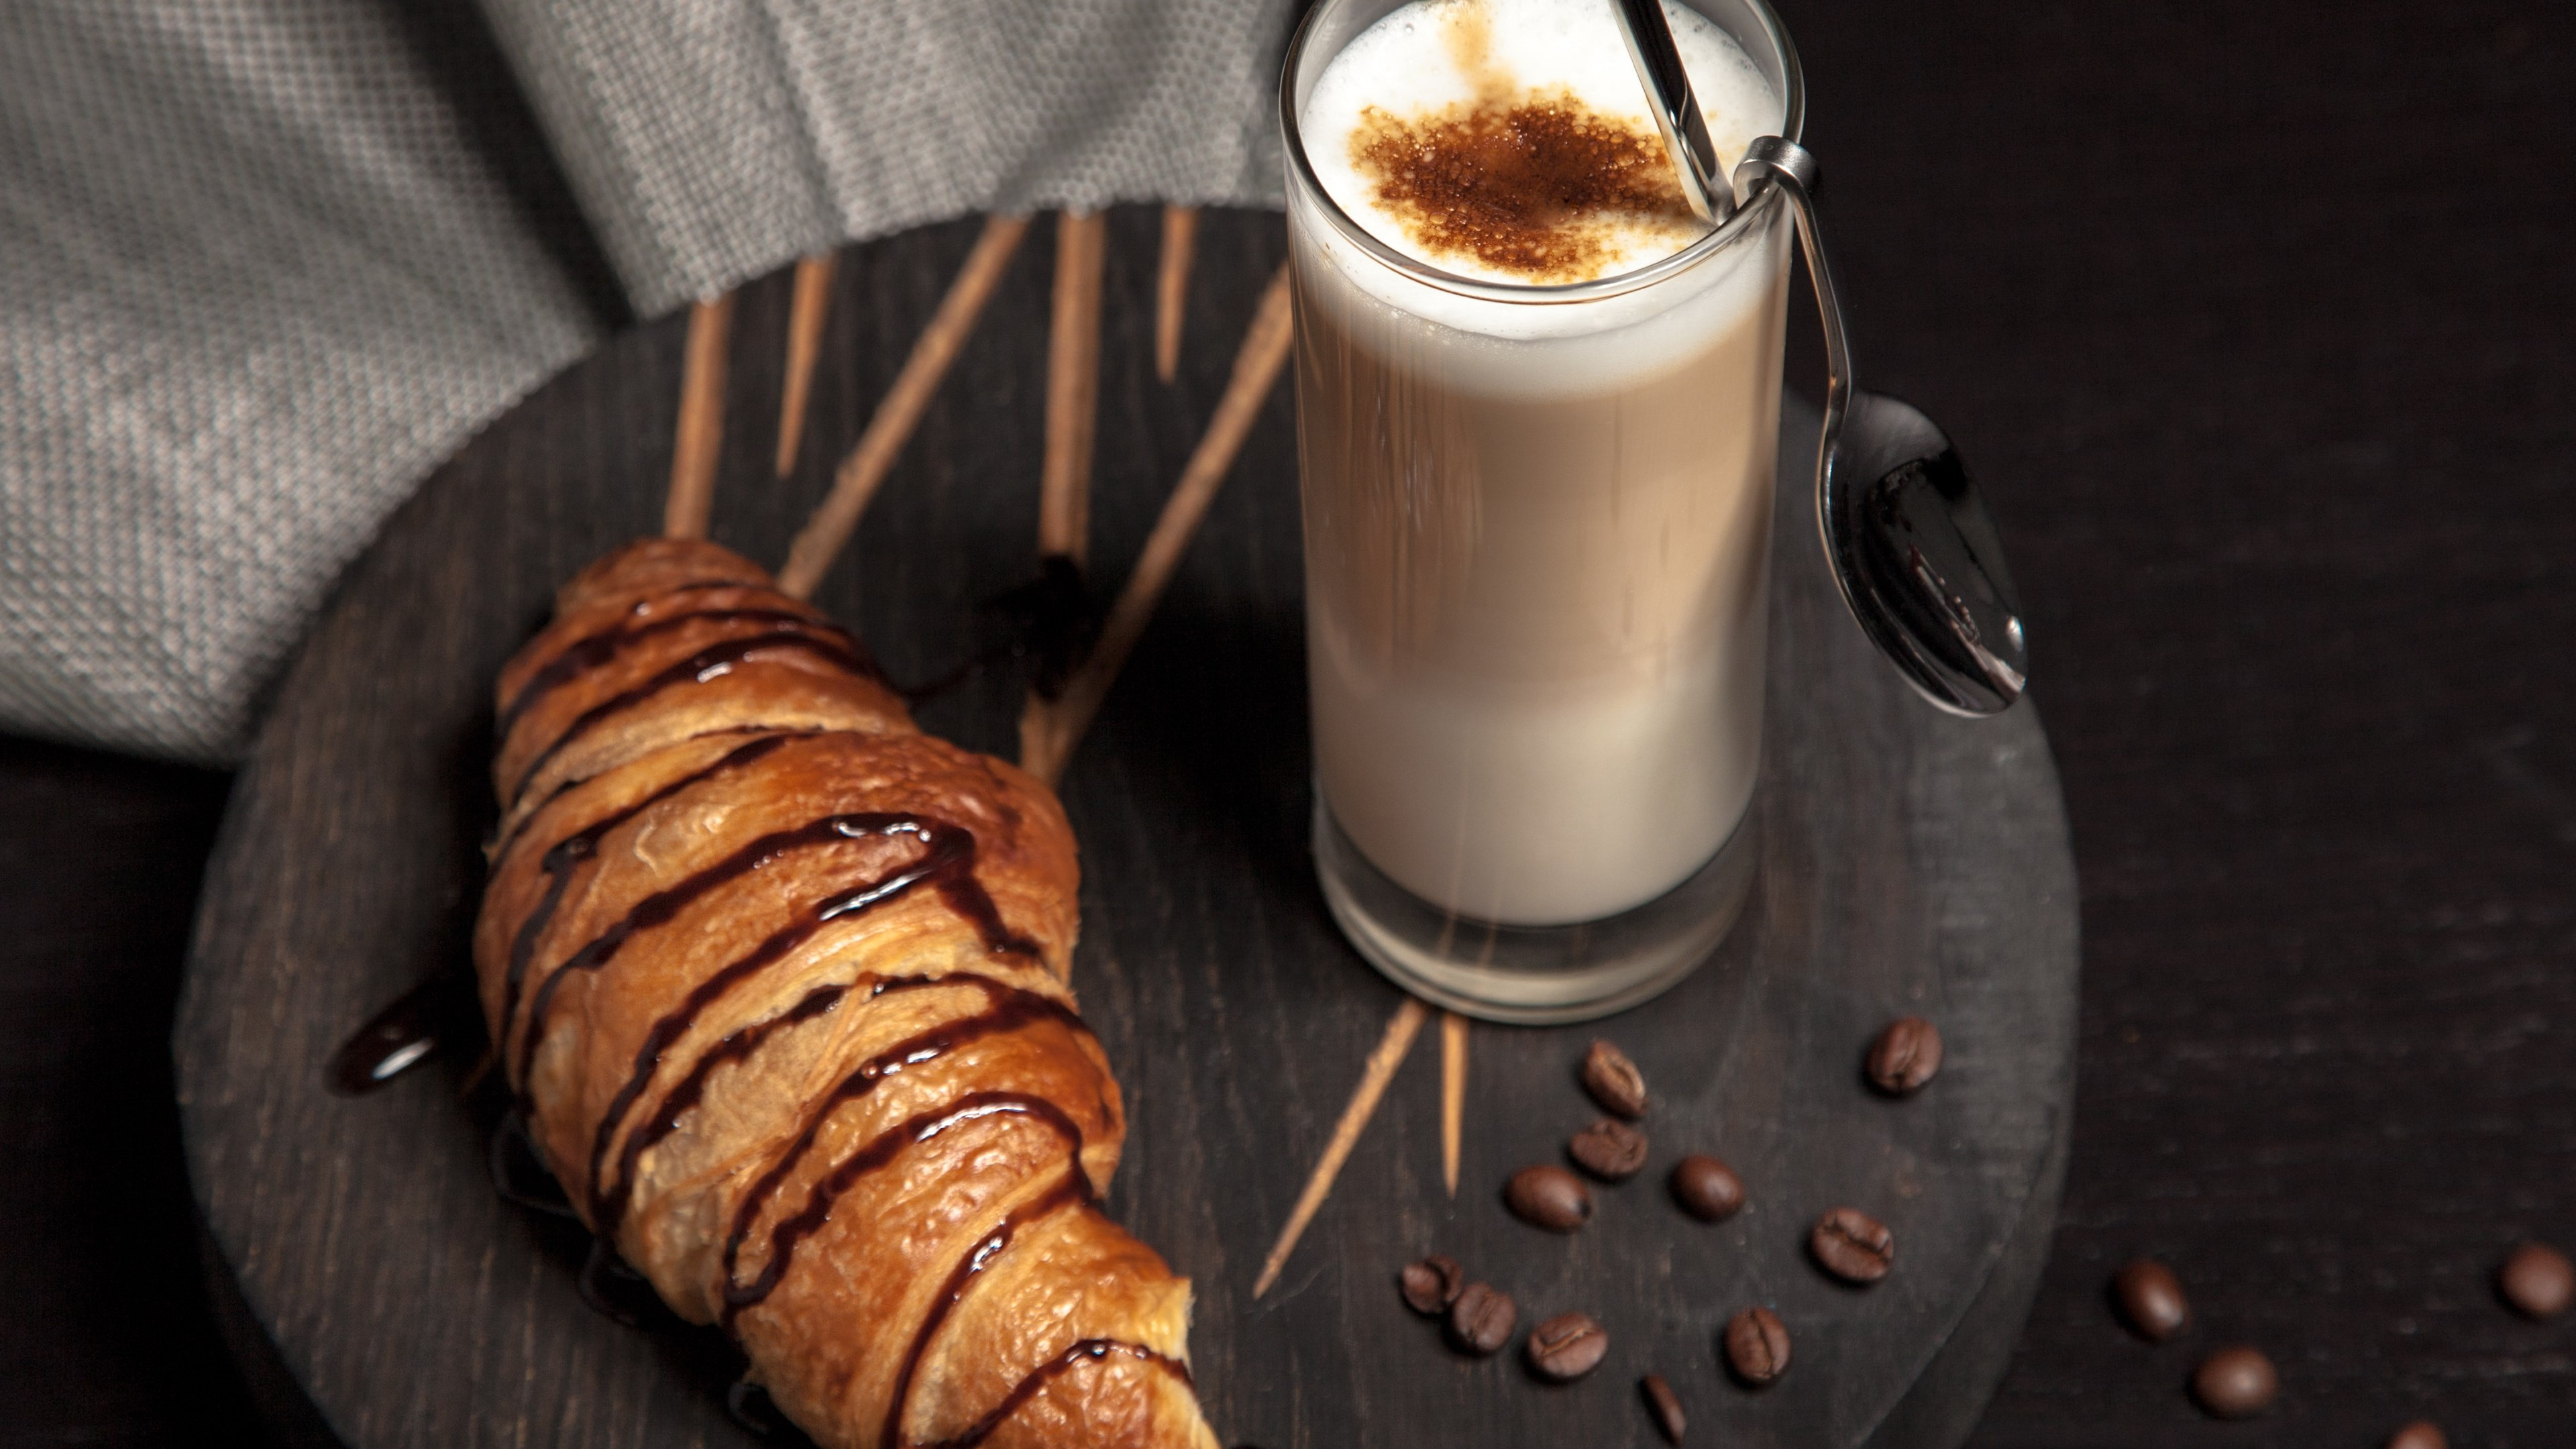 Cappuccino and chocolate croissant wallpaper 3840x2160